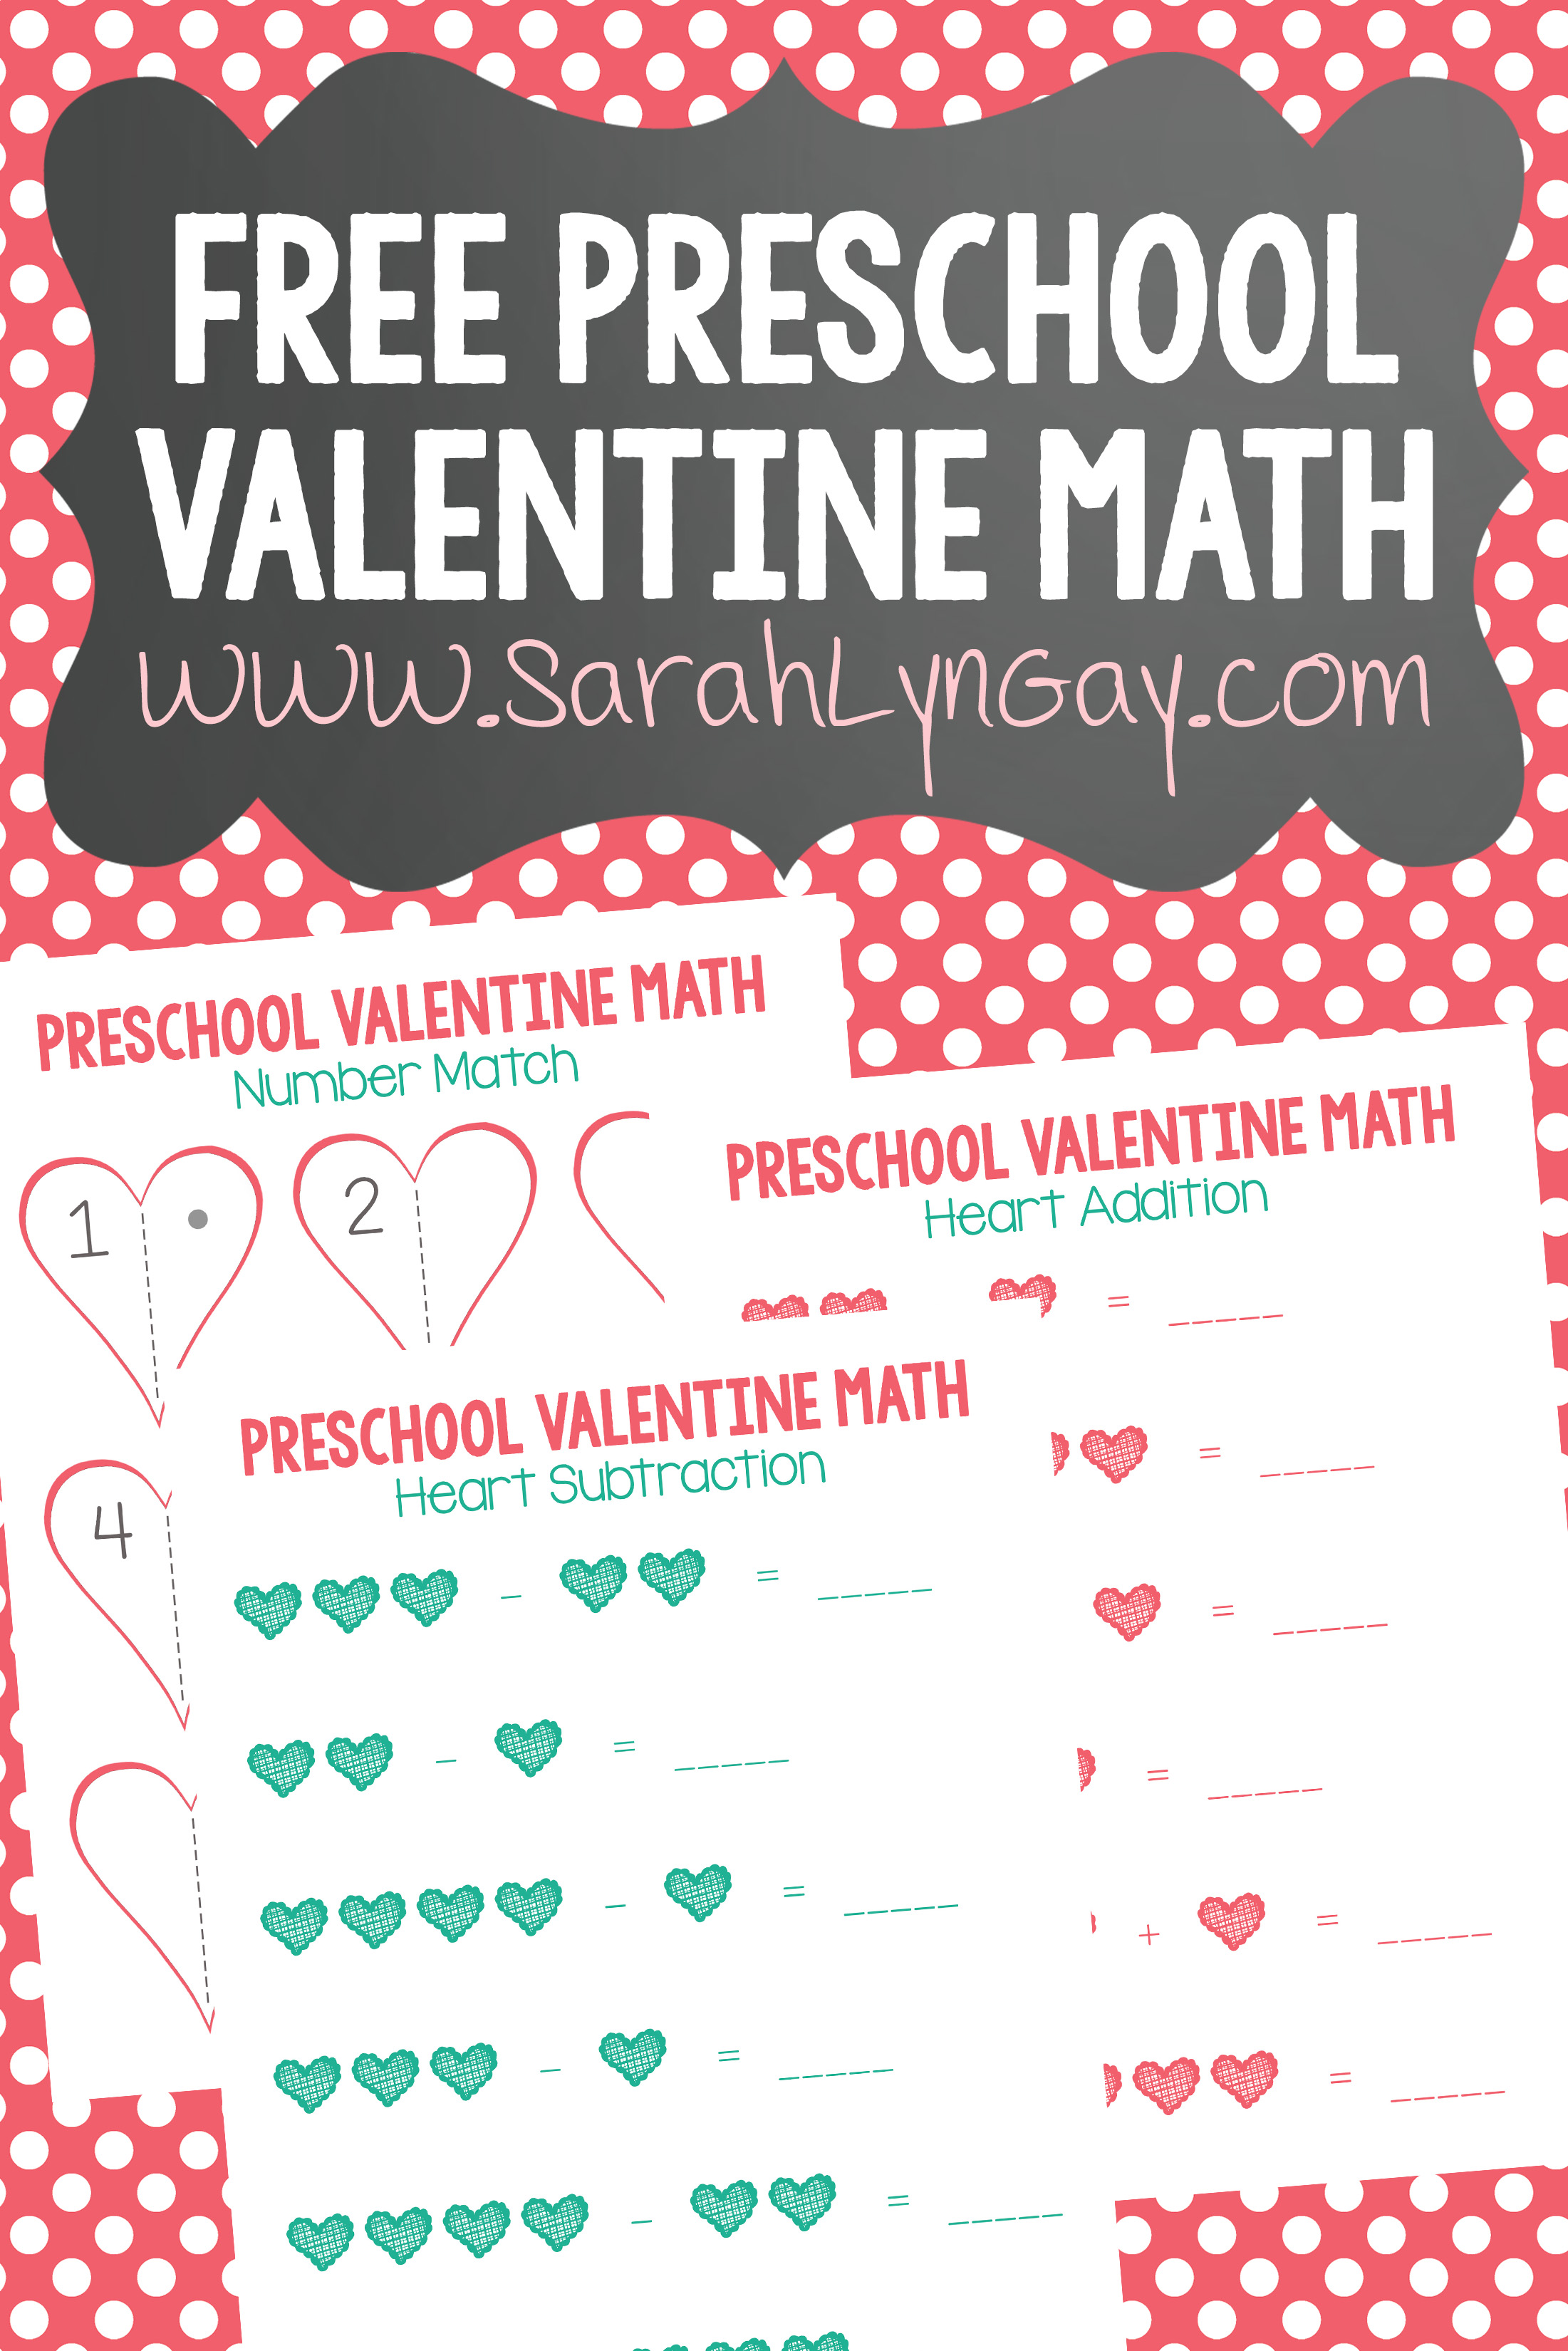 graphic about Preschool Valentine Printable Worksheets known as Preschool Valentine Math Totally free Printable Worksheet - Sarah